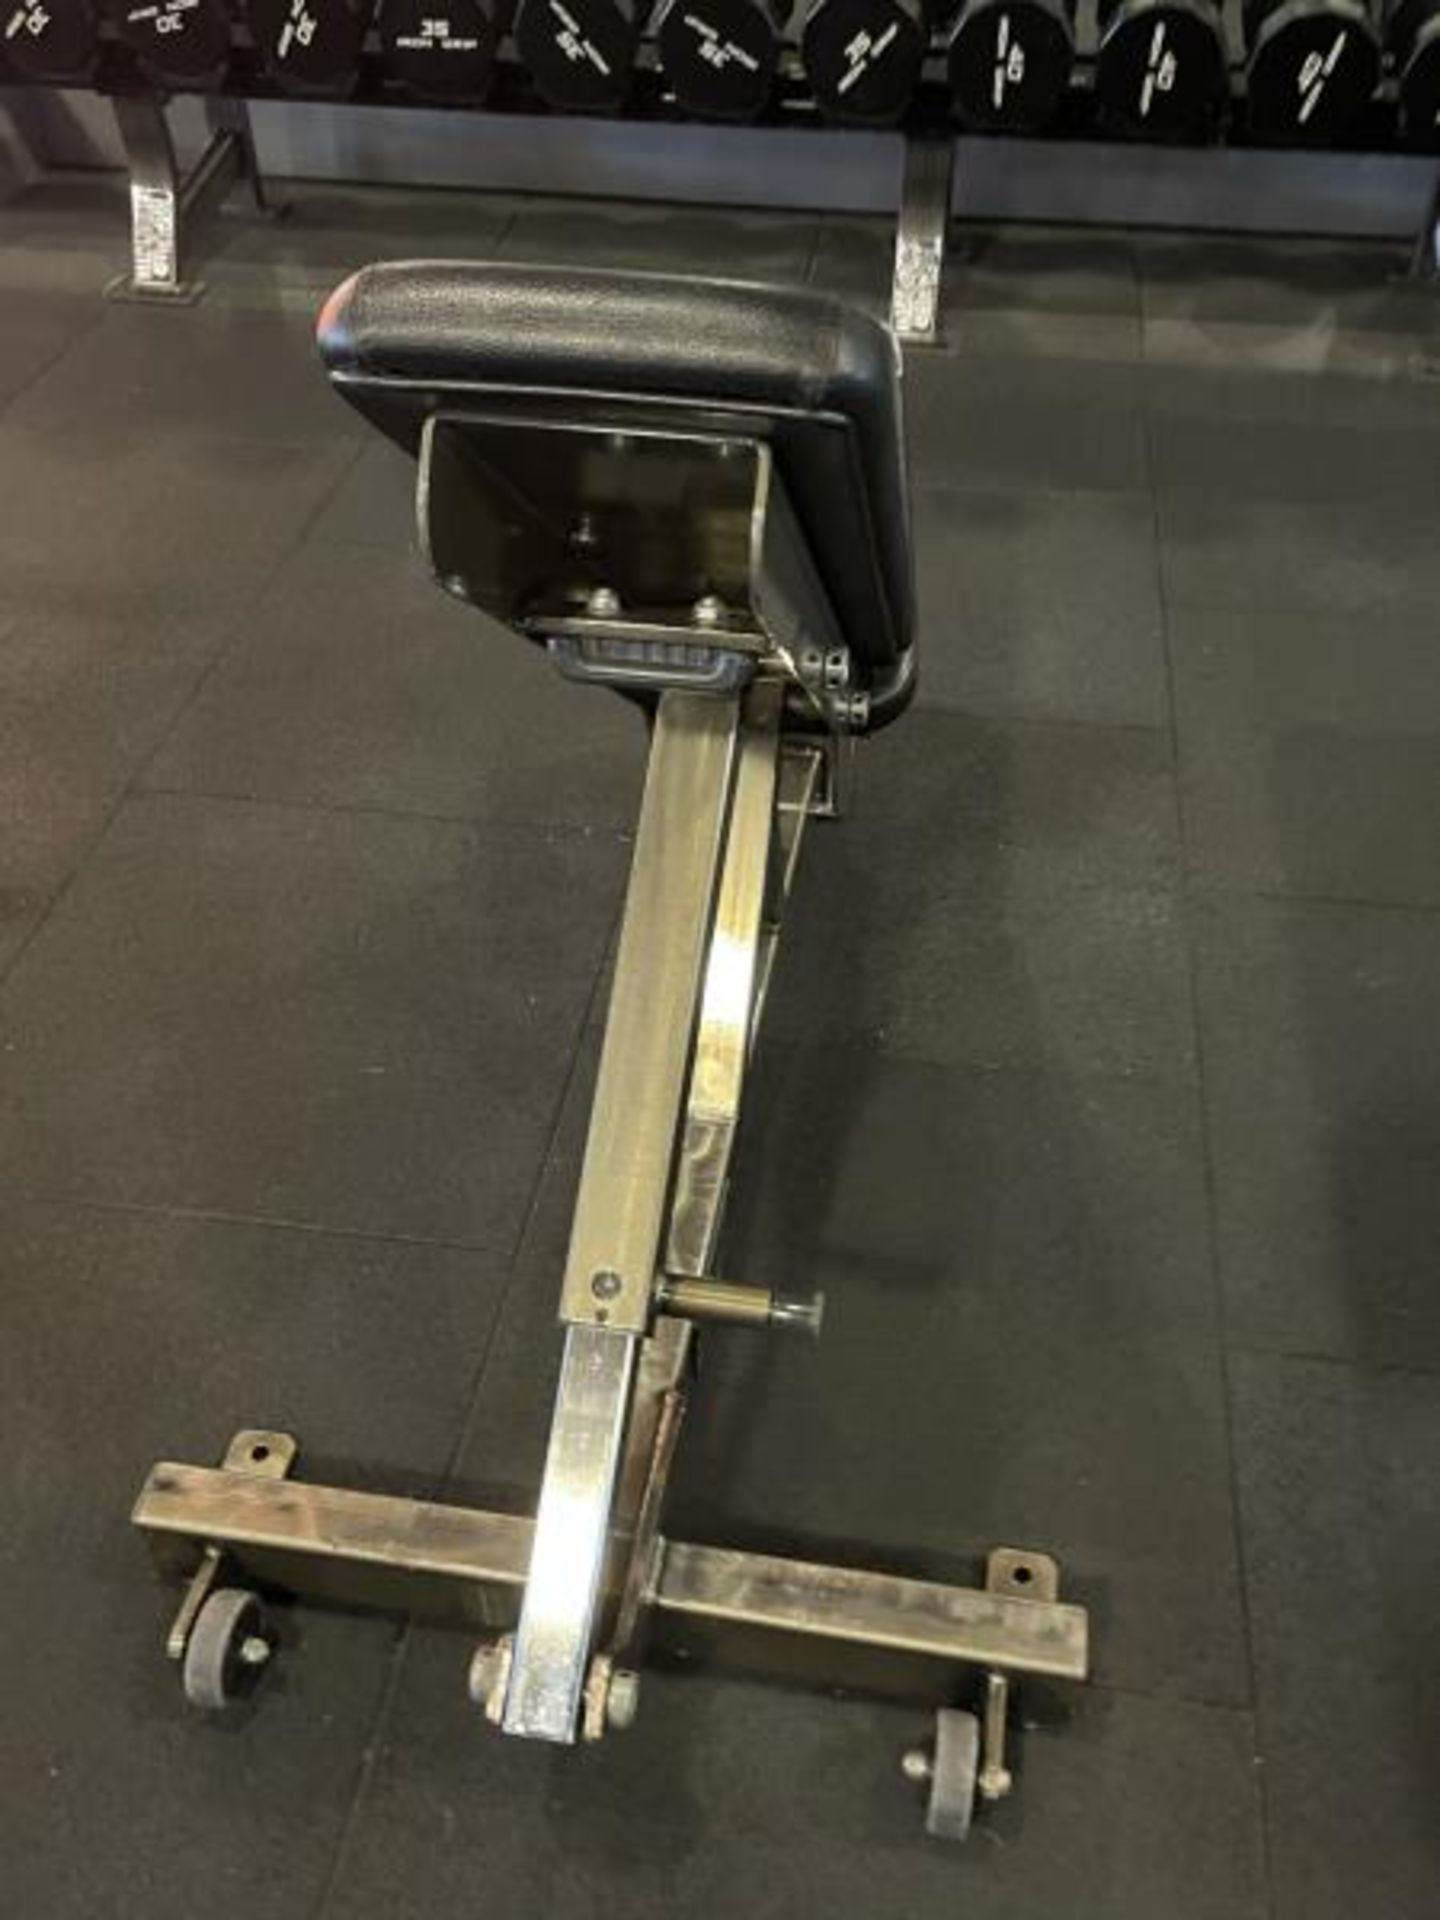 Hammer Strength Adjustable Bench with Torn Vinyl - Image 4 of 4